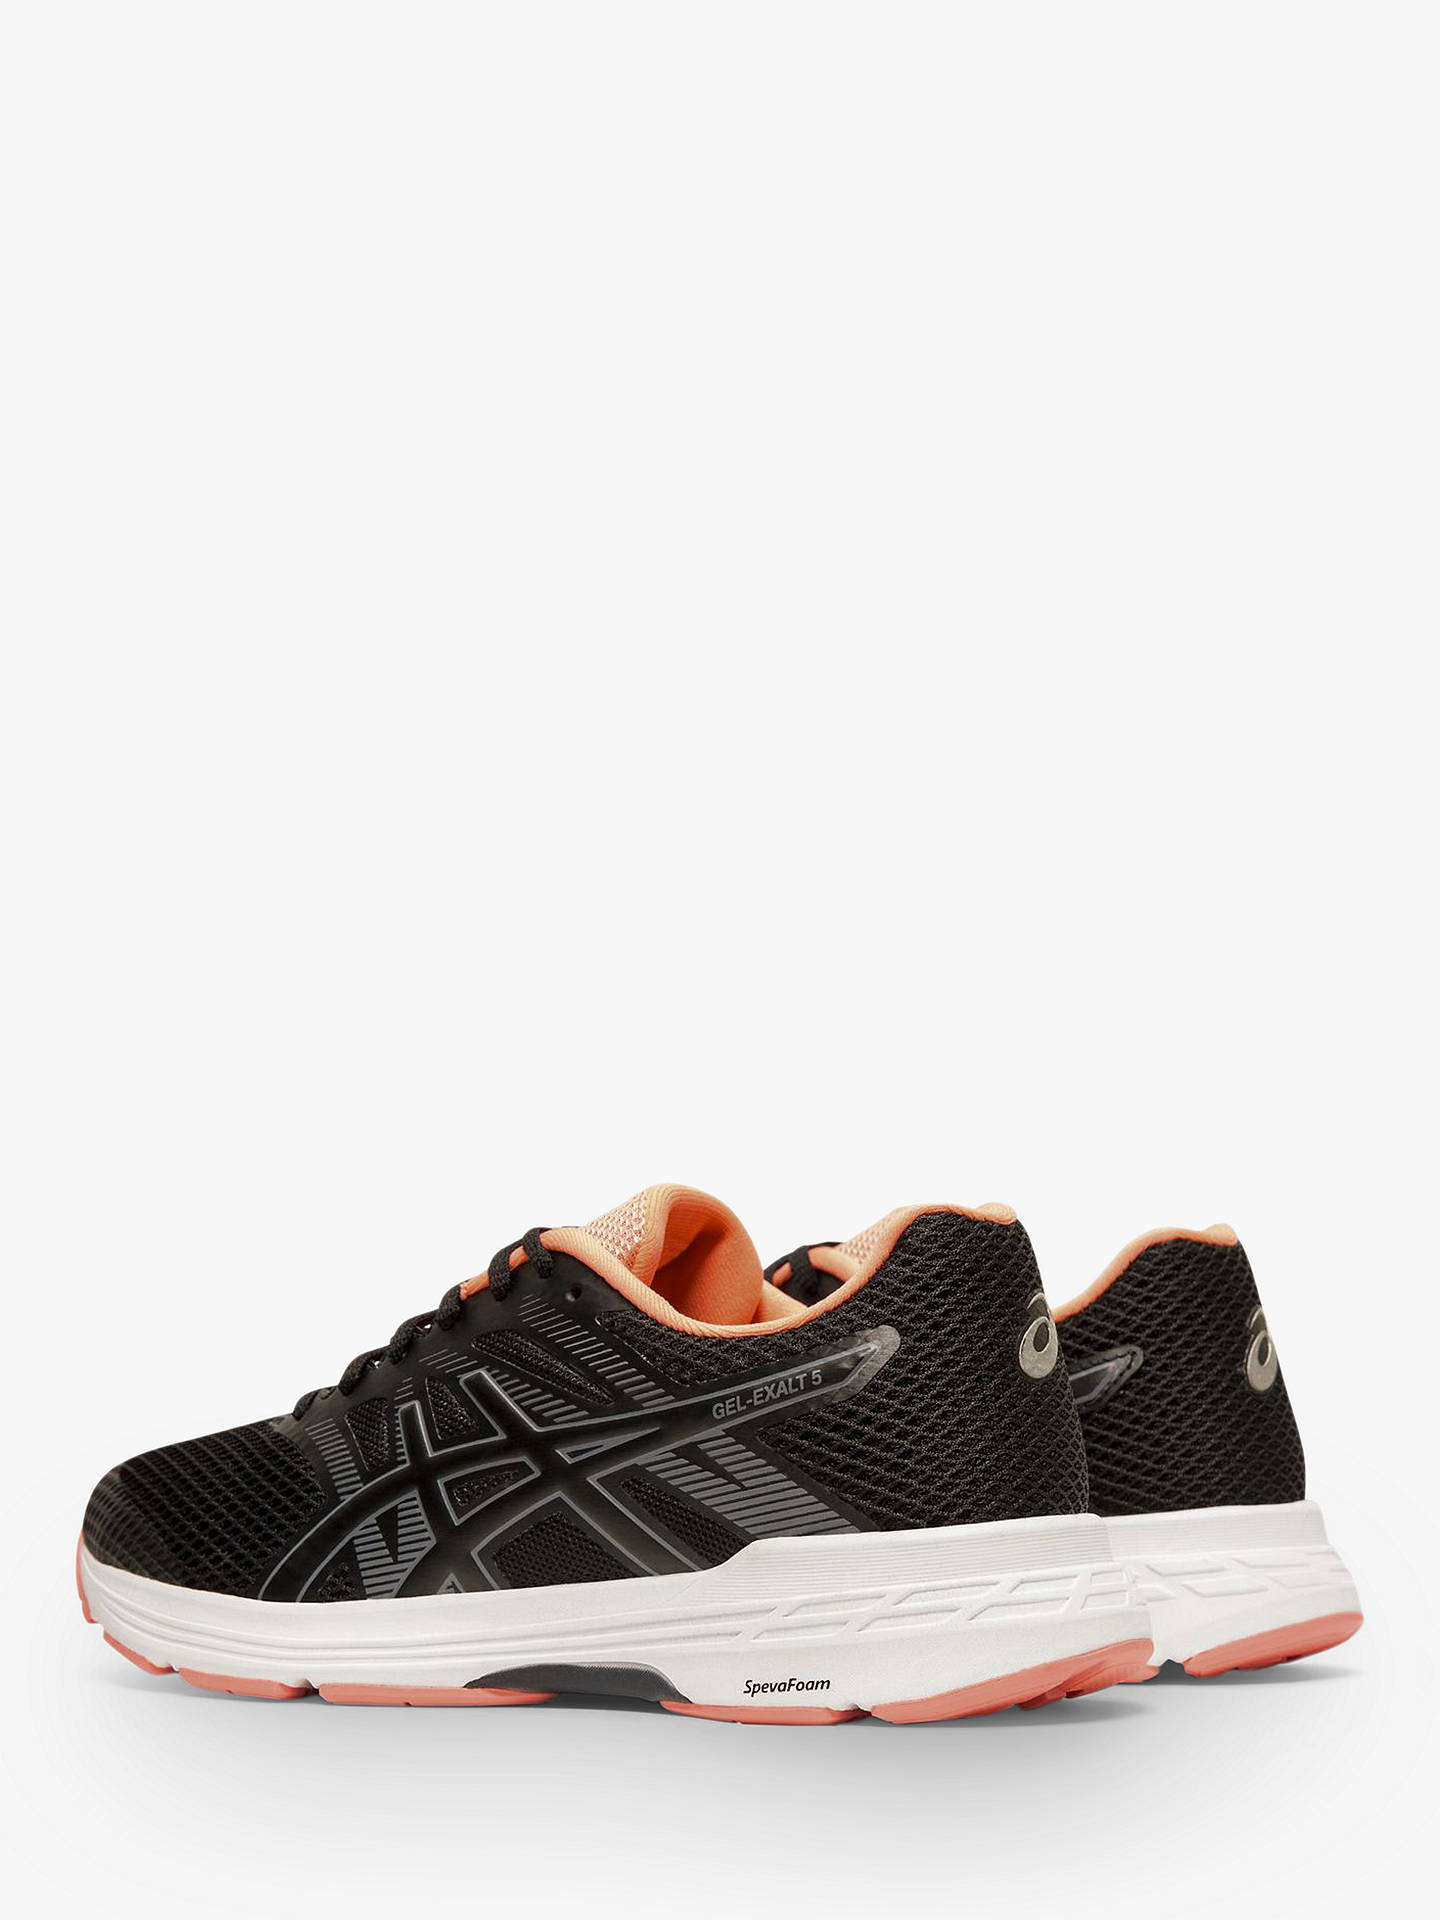 Buy ASICS GEL-EXALT 5 Women's Running Shoes, Black/Metropolis, 4 Online at johnlewis.com